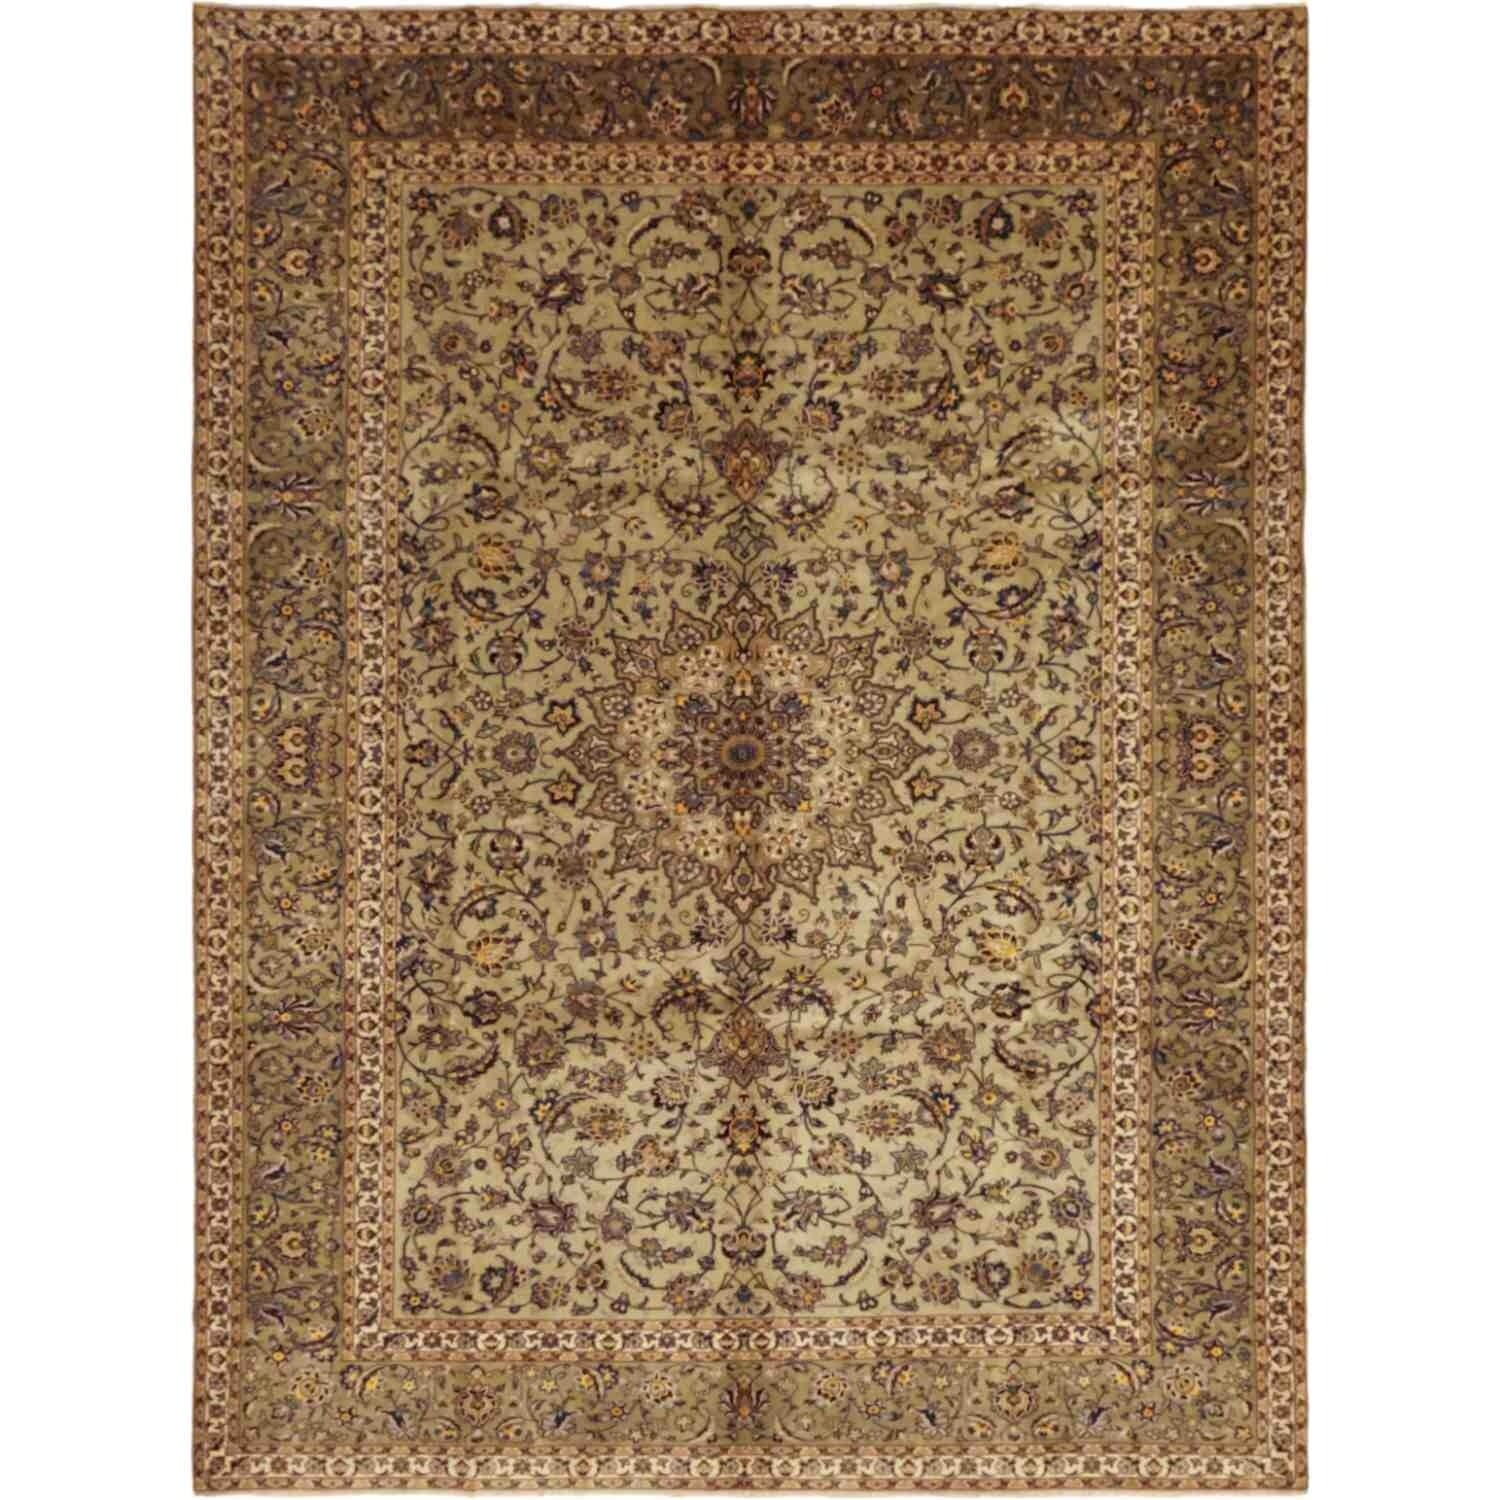 Kashan Hand Knotted Area Rug 8